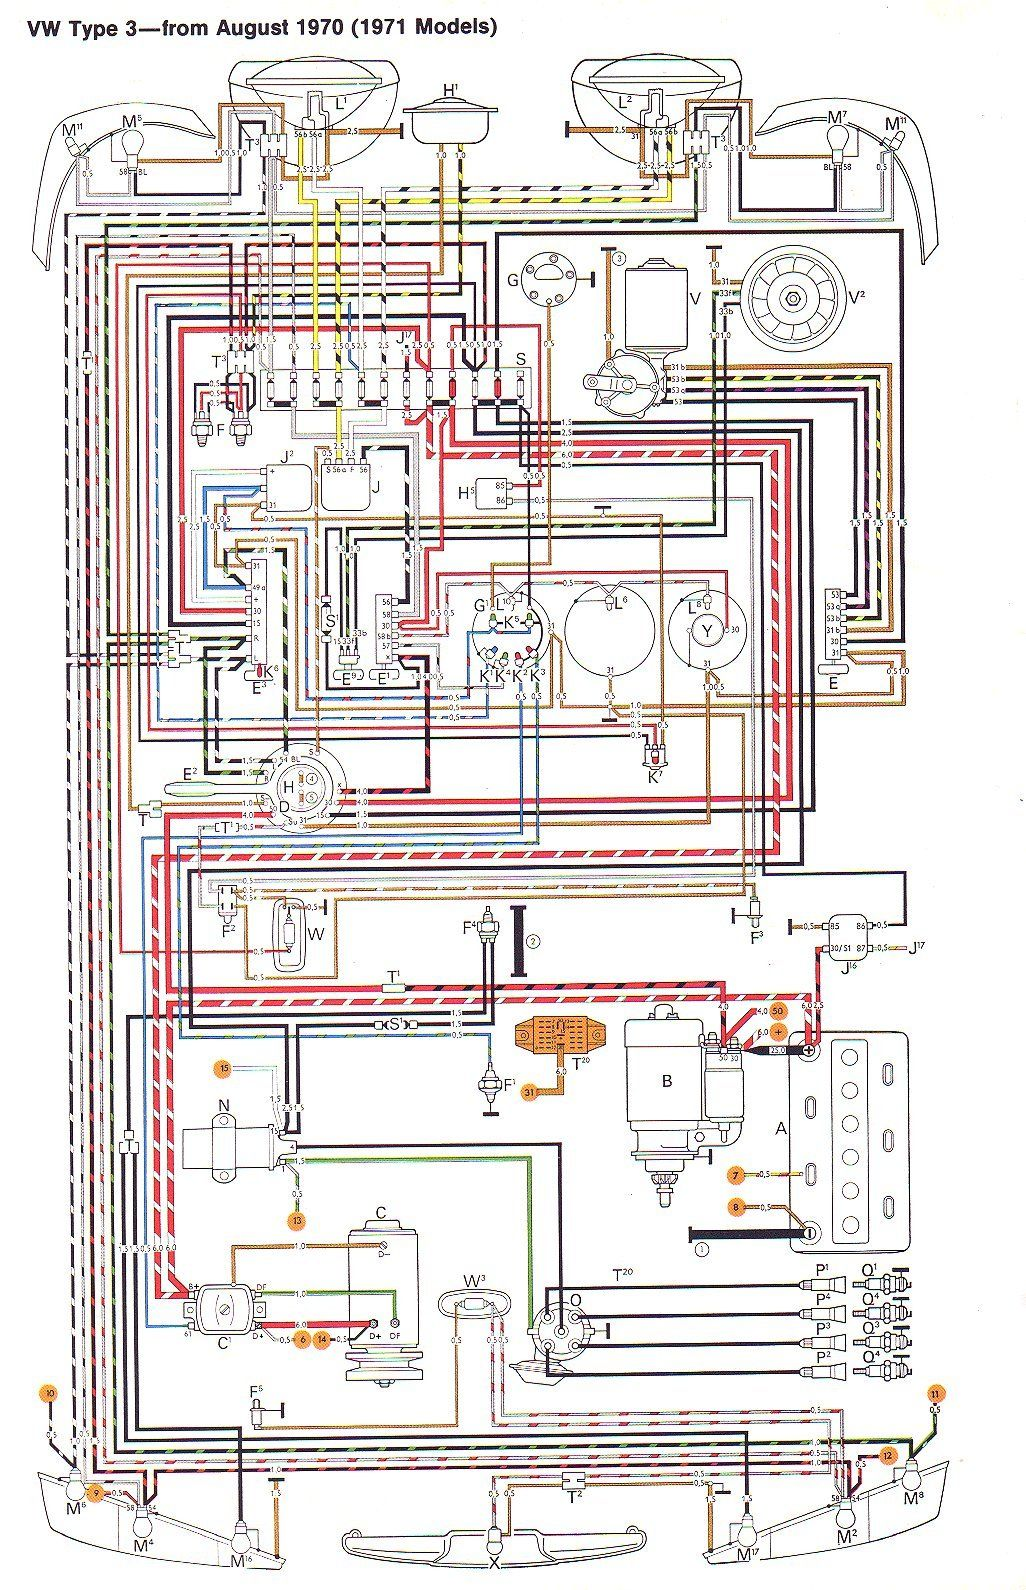 small resolution of 71 vw t3 wiring diagram van interior diagram type 3 volkswagen vintage